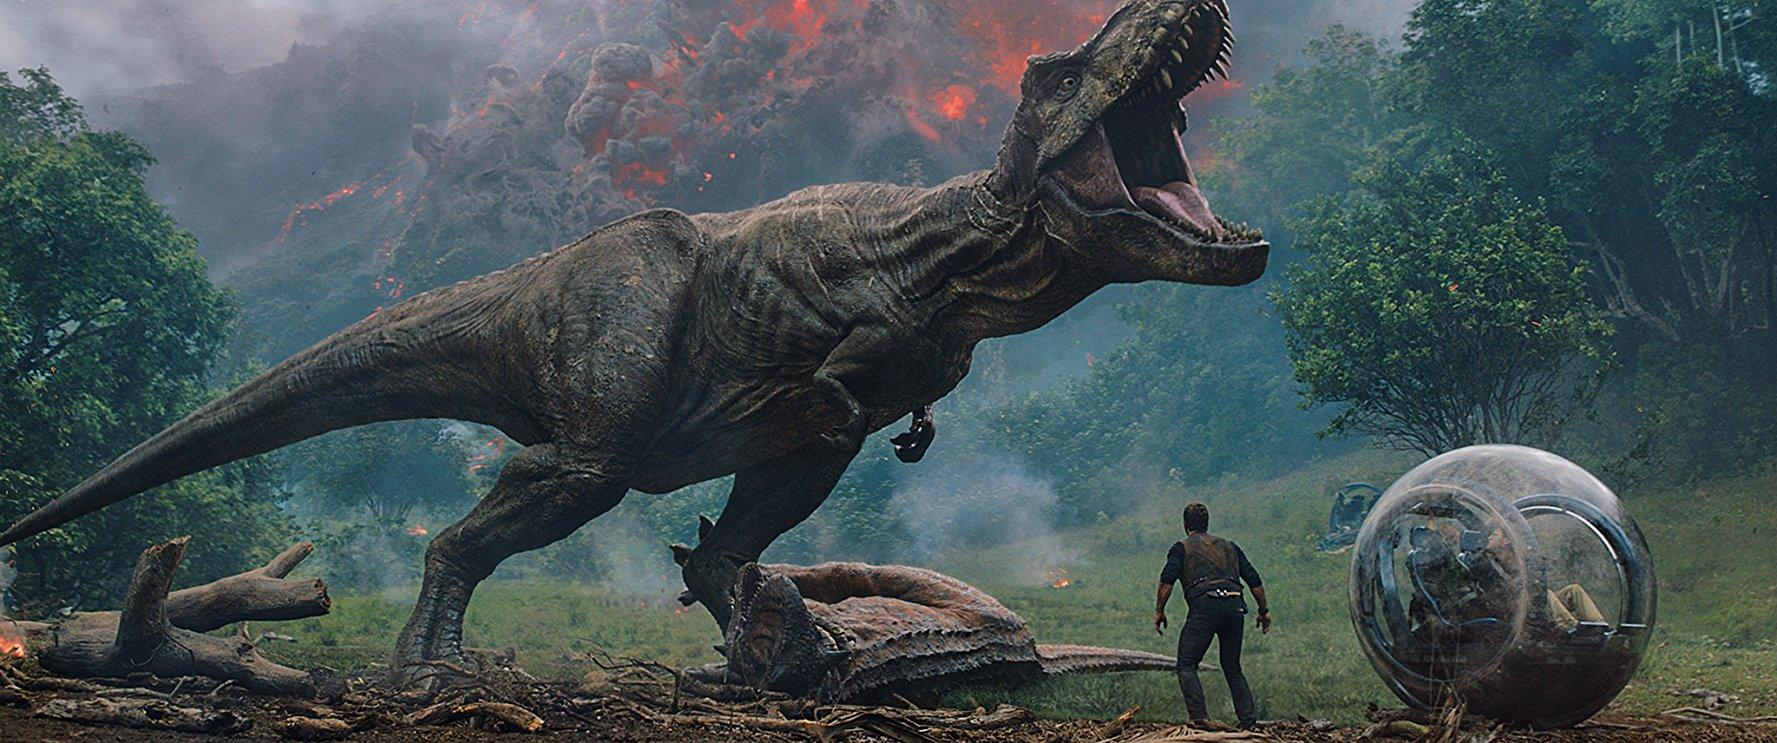 Jurassic World Fallen Kingdom - prateria rex run sphere scene - film poster